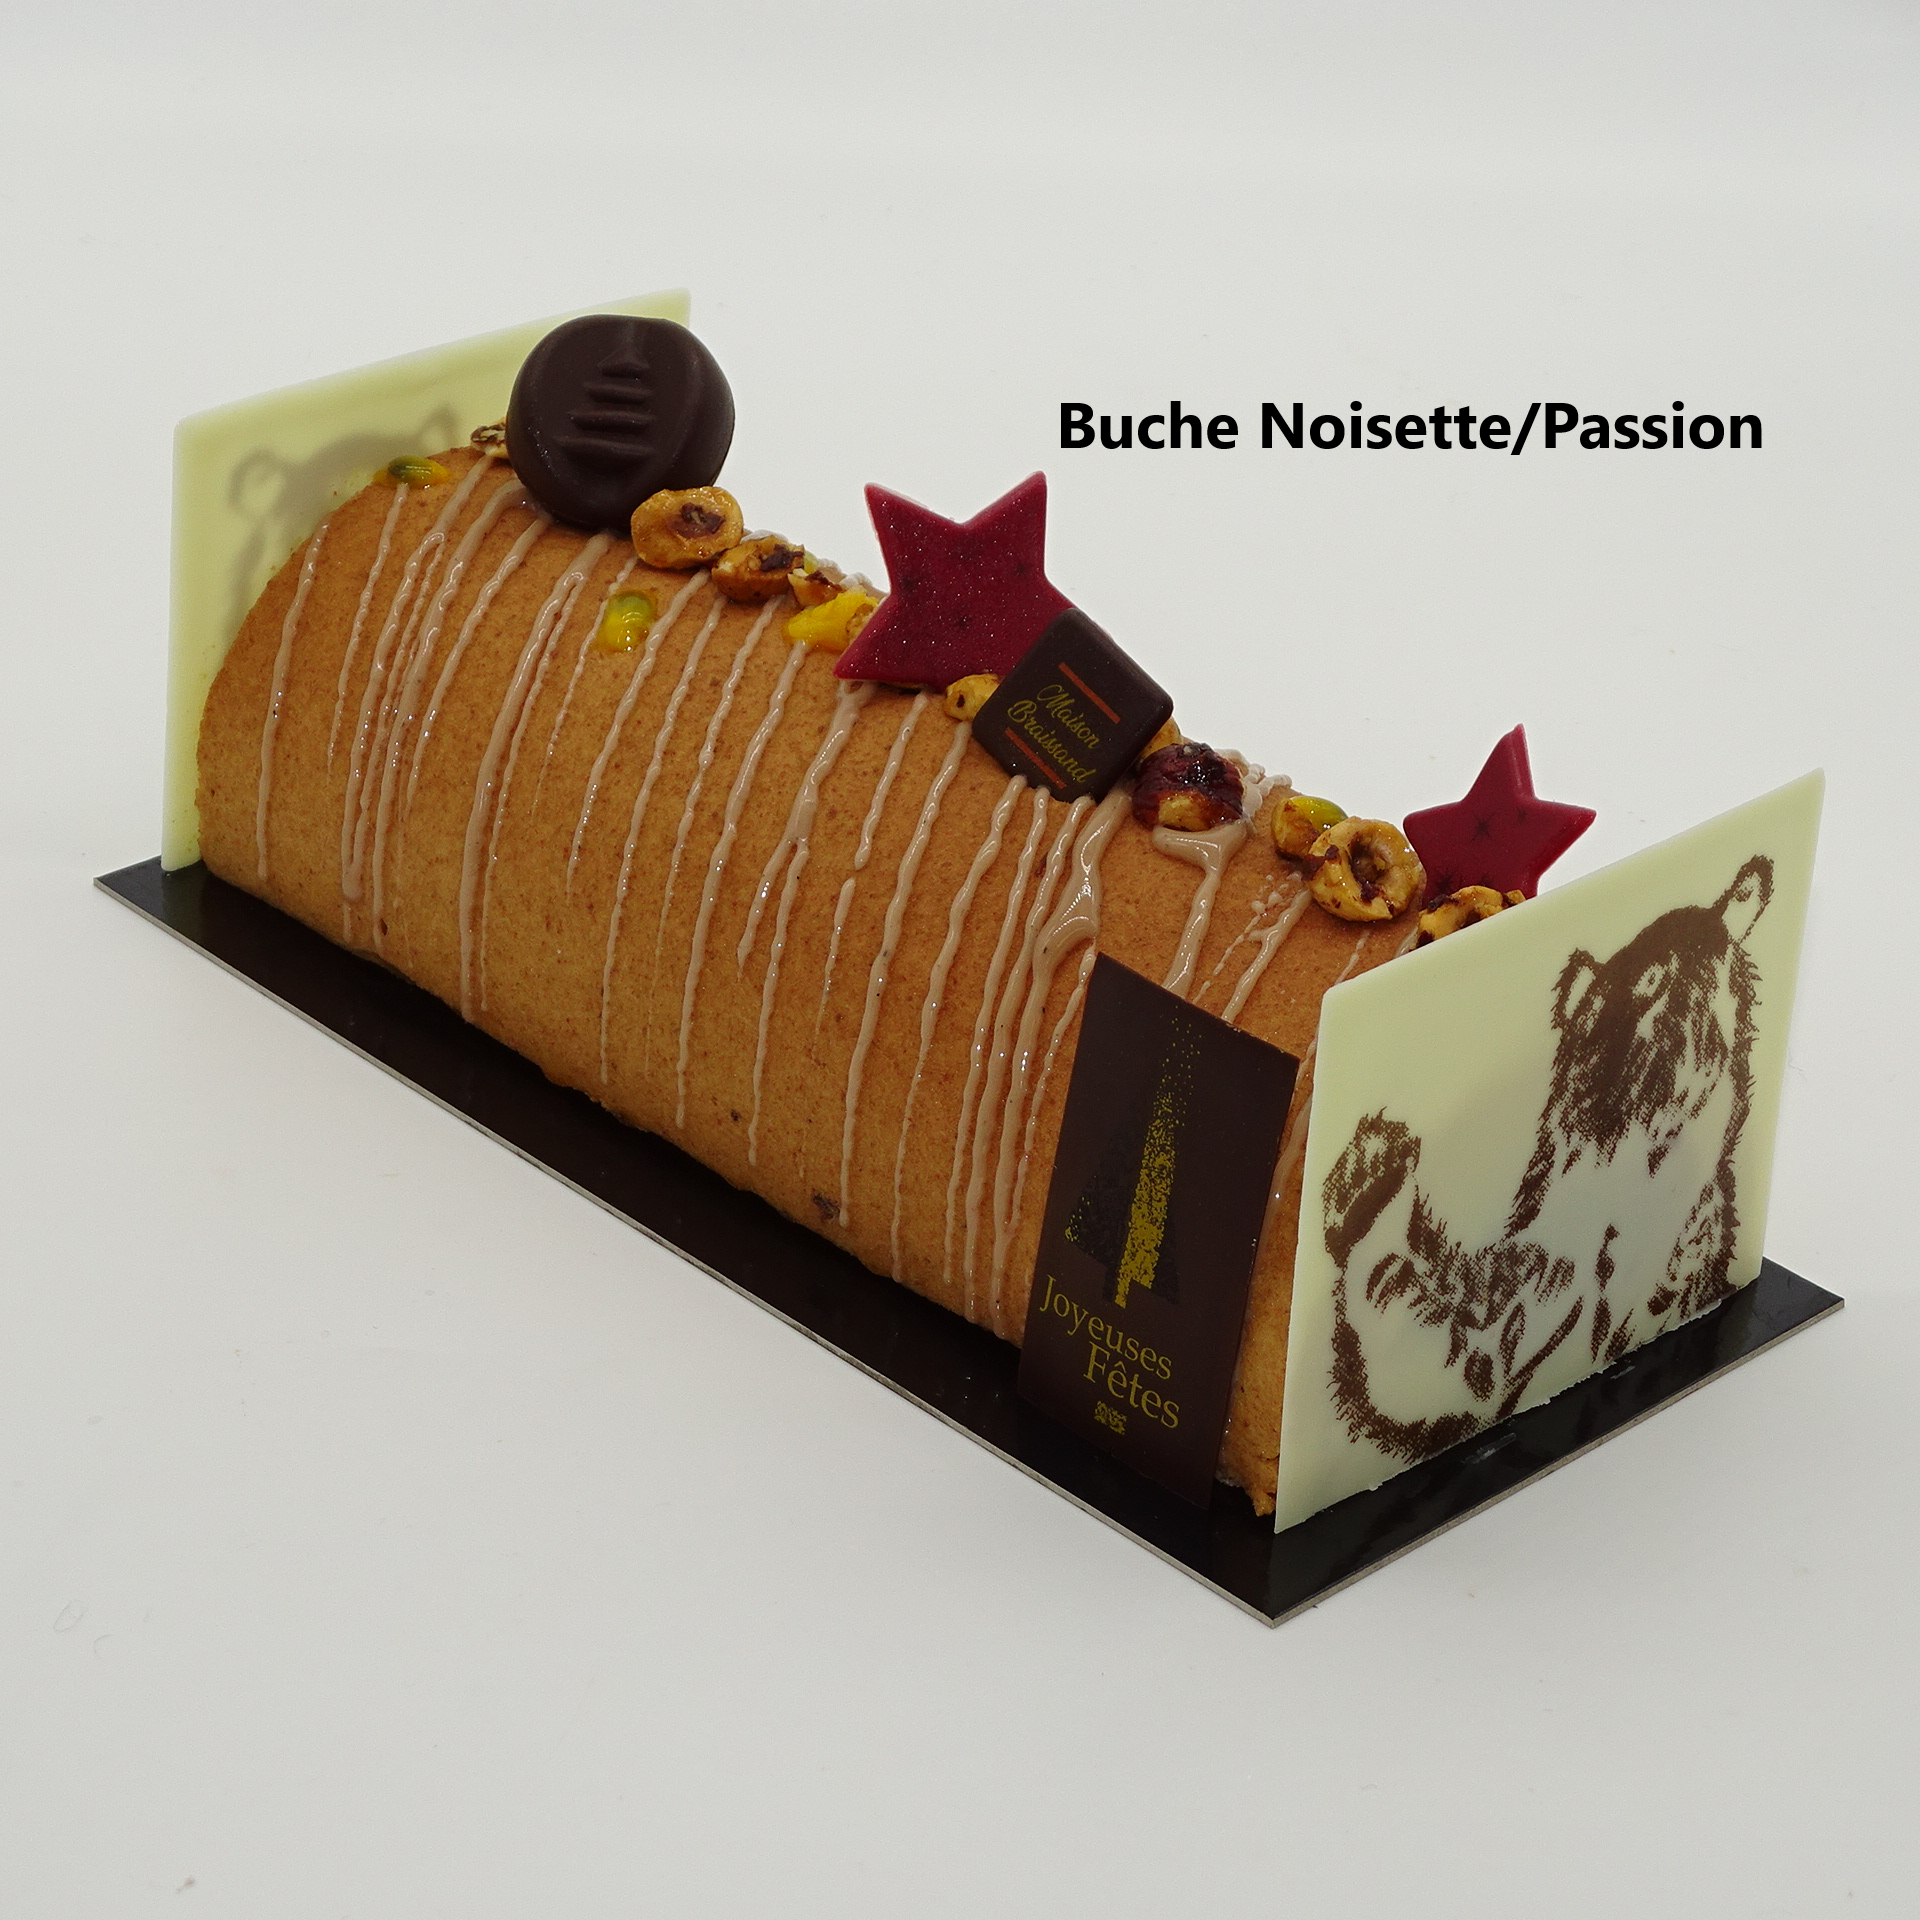 Buche Noisette-Passion